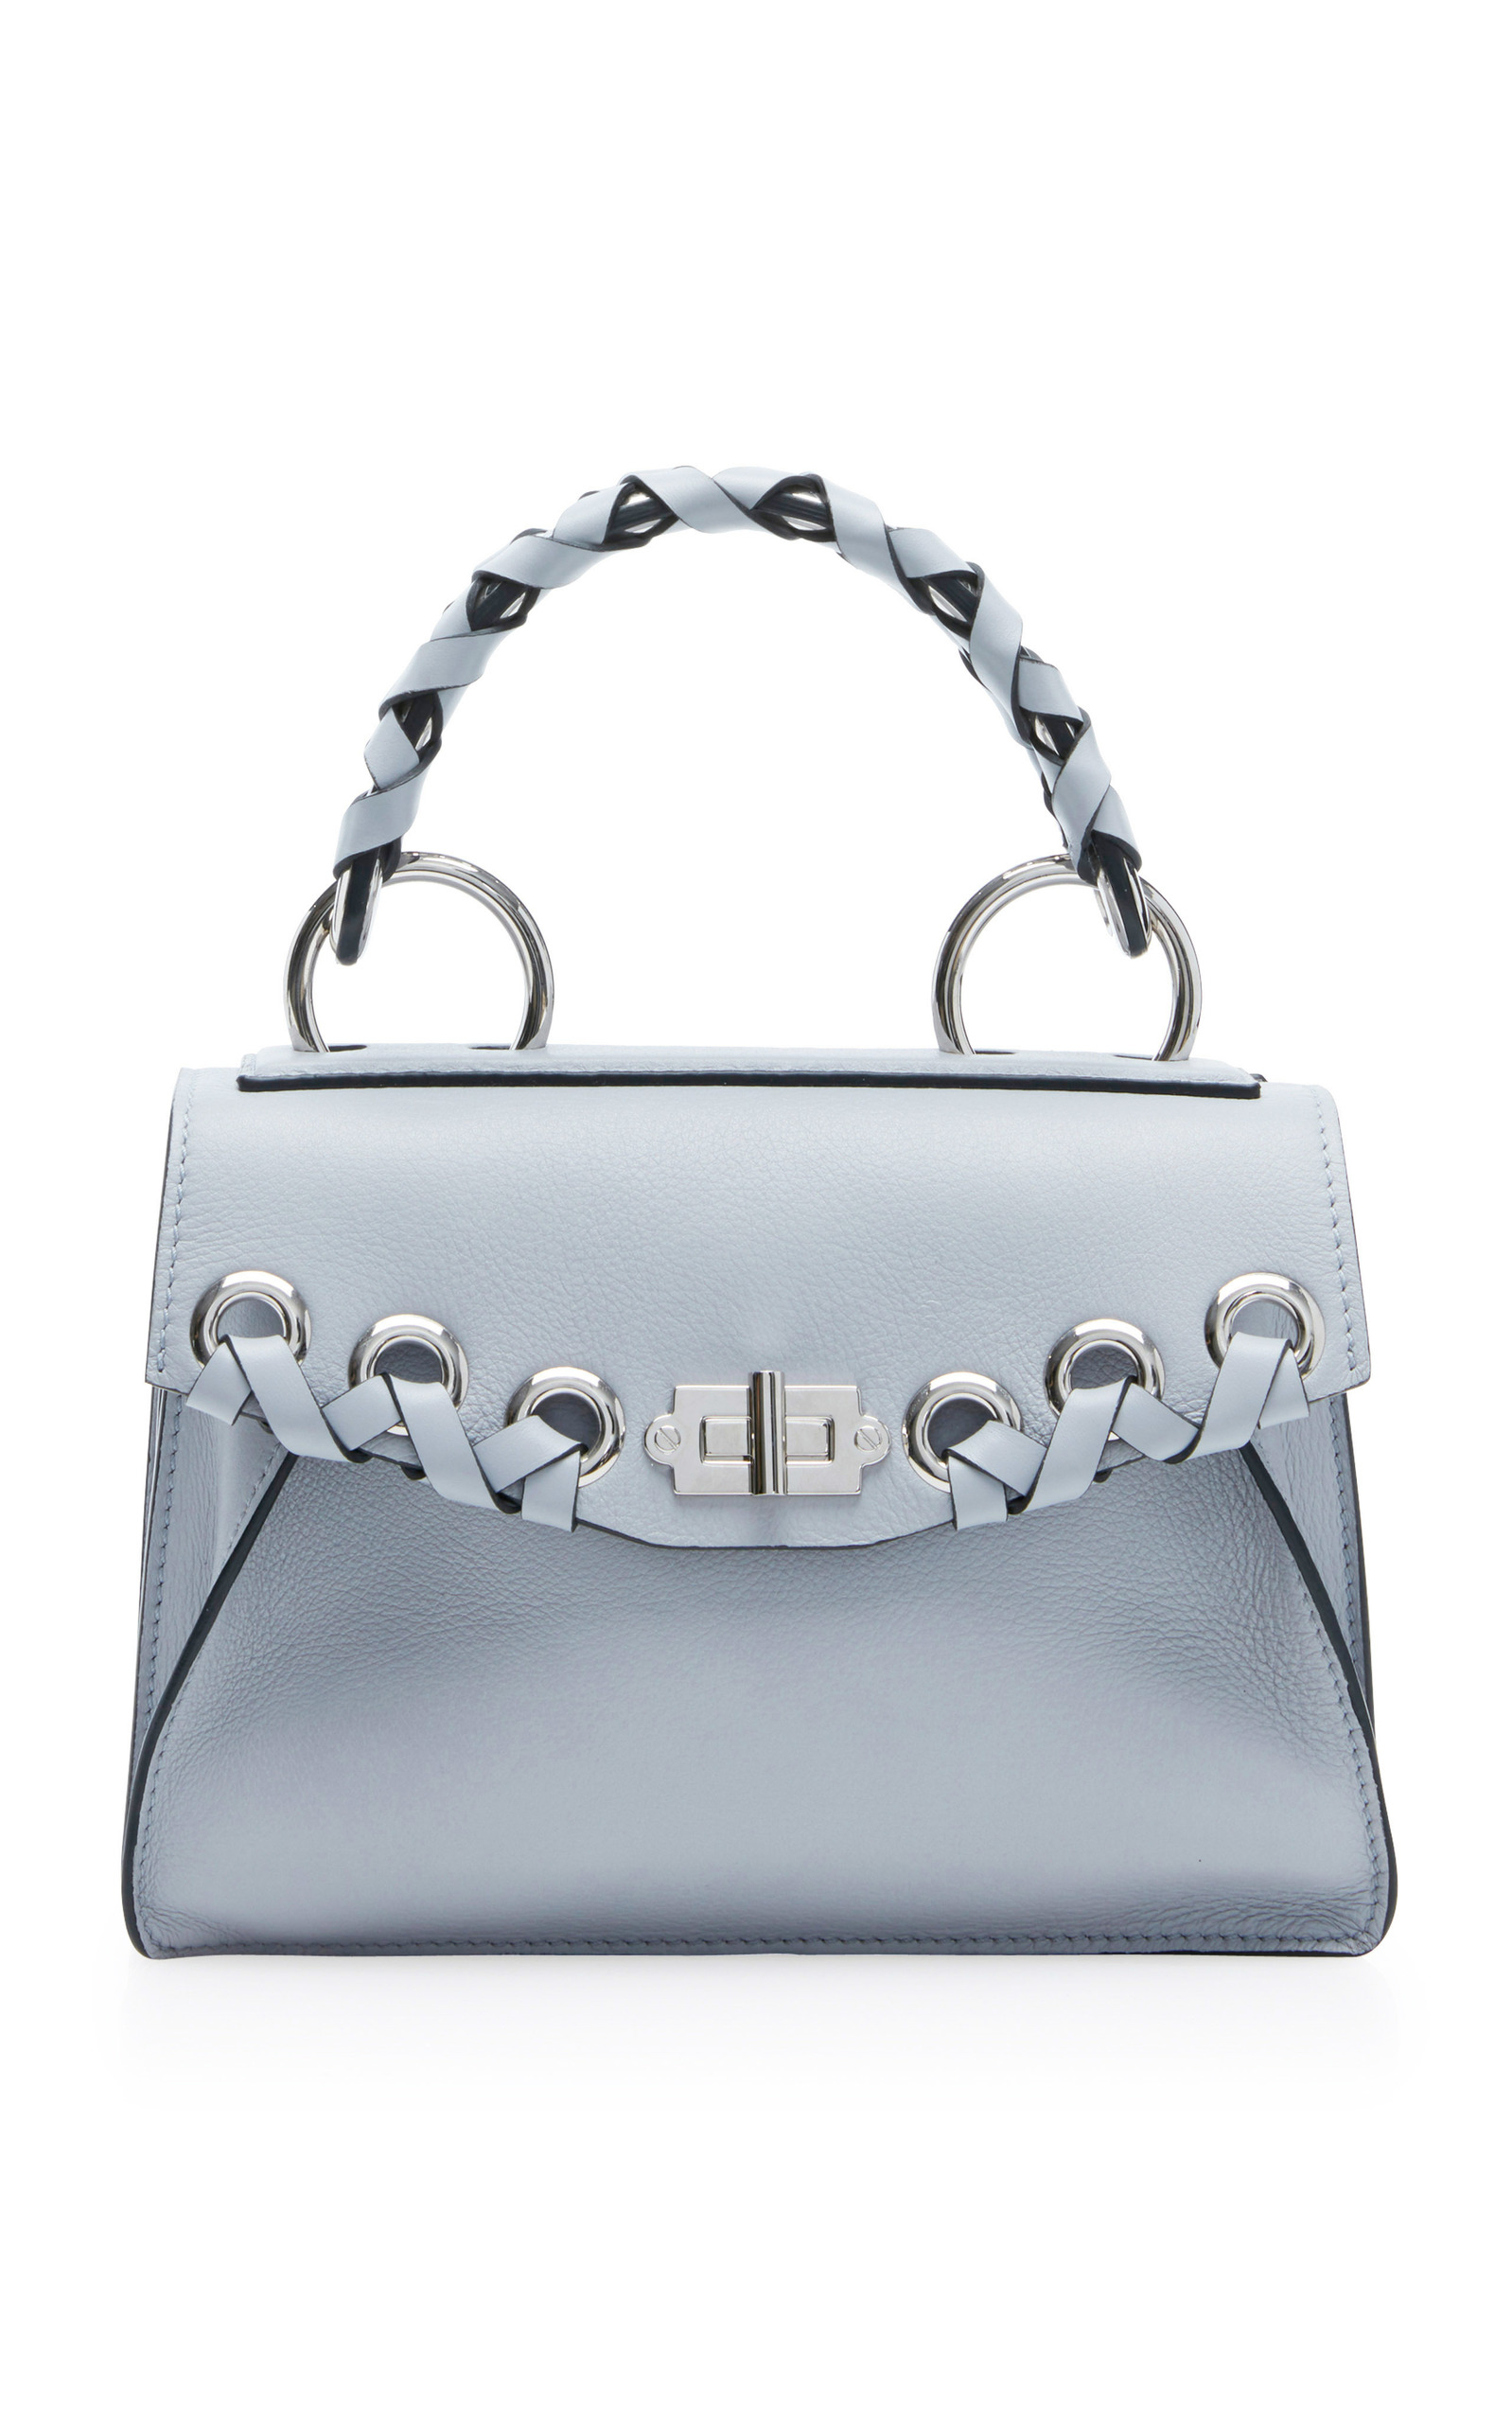 Proenza Schouler Small Hava Whipstitched Top-Handle Bag HB6O5Th8mQ